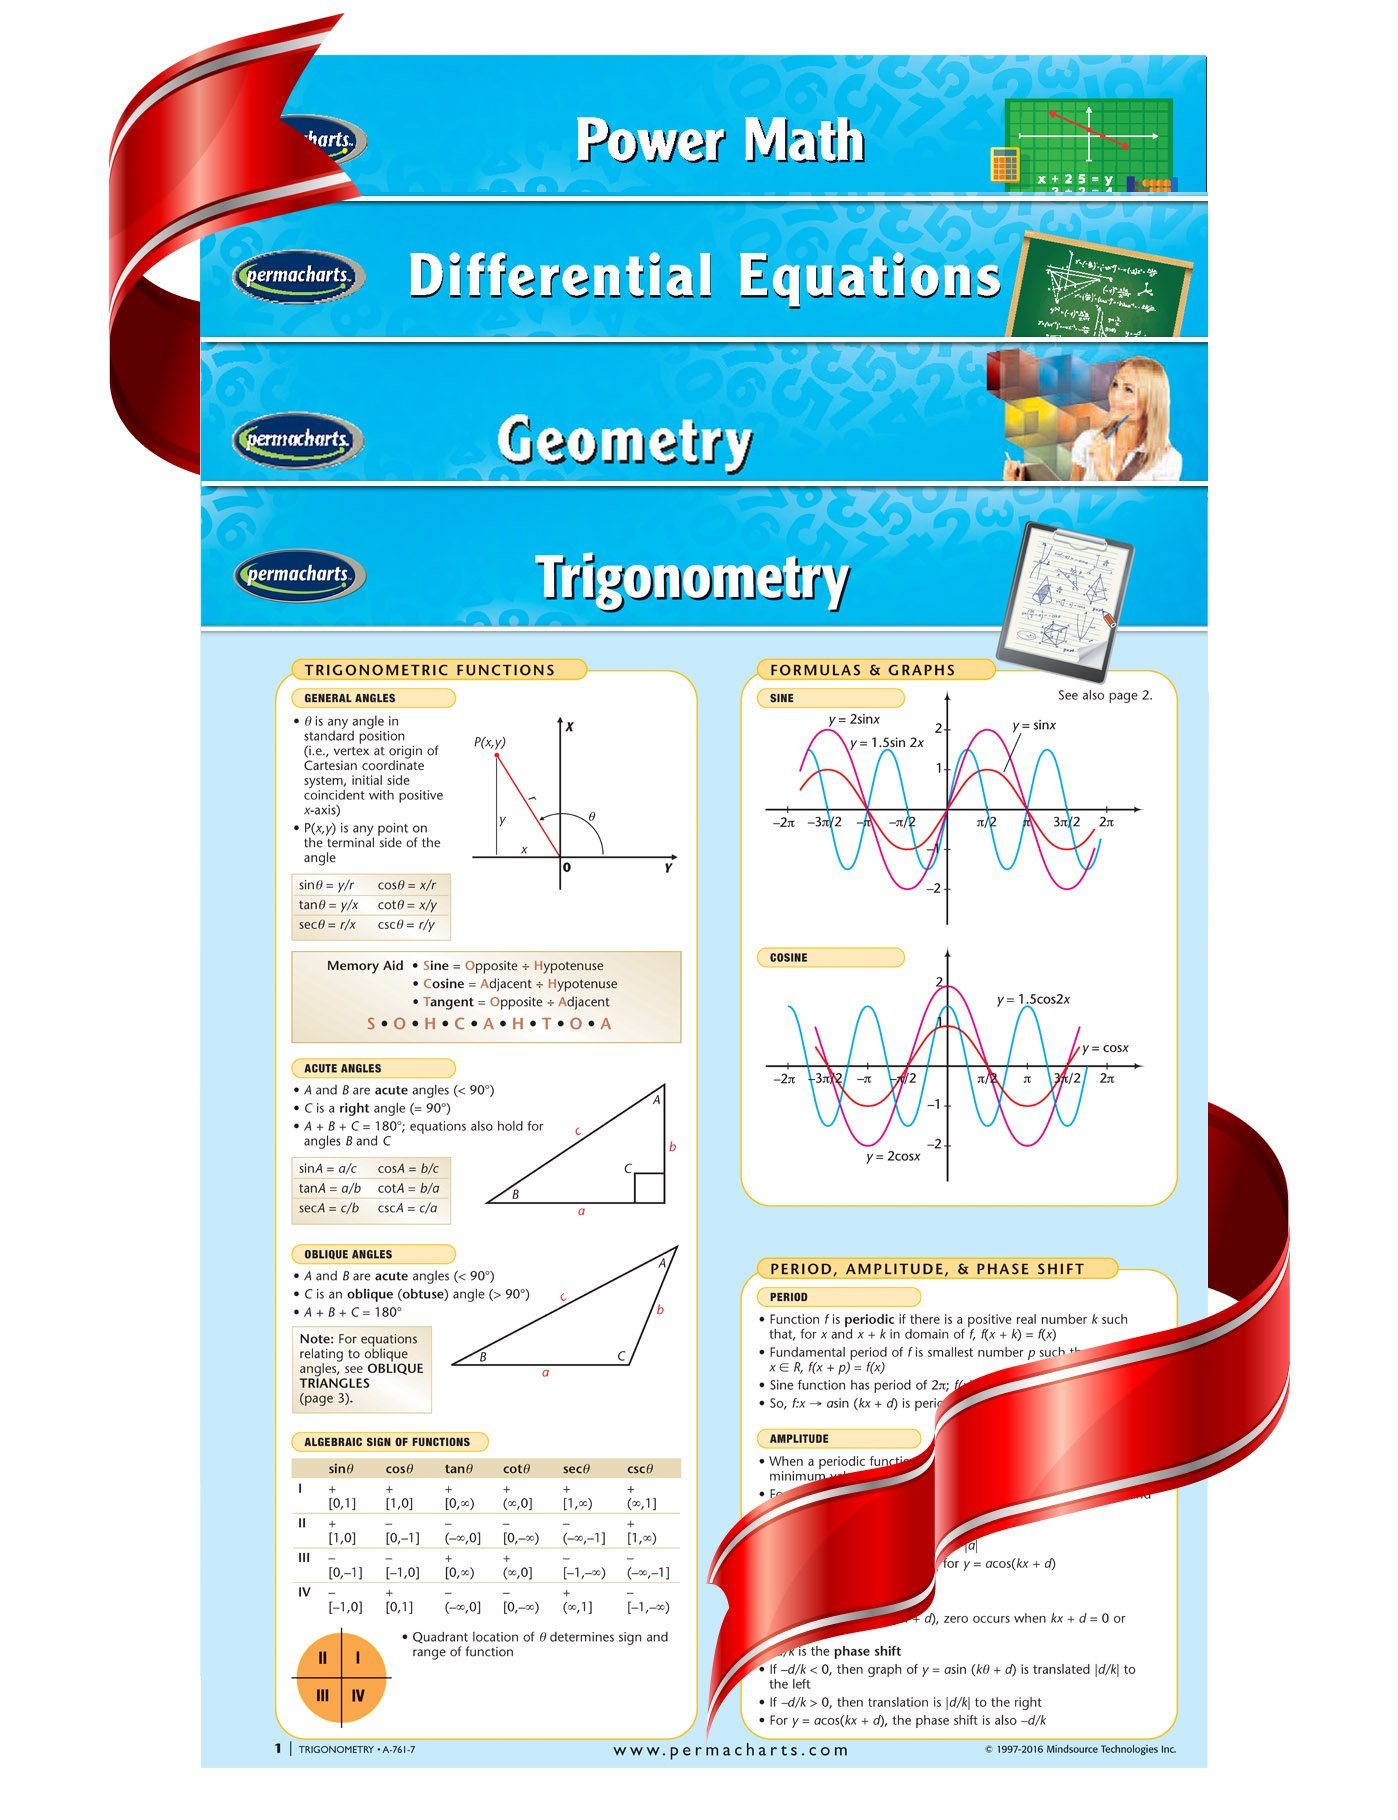 Mathematics - High School Math Quick Reference Guide Bundle by Permacharts